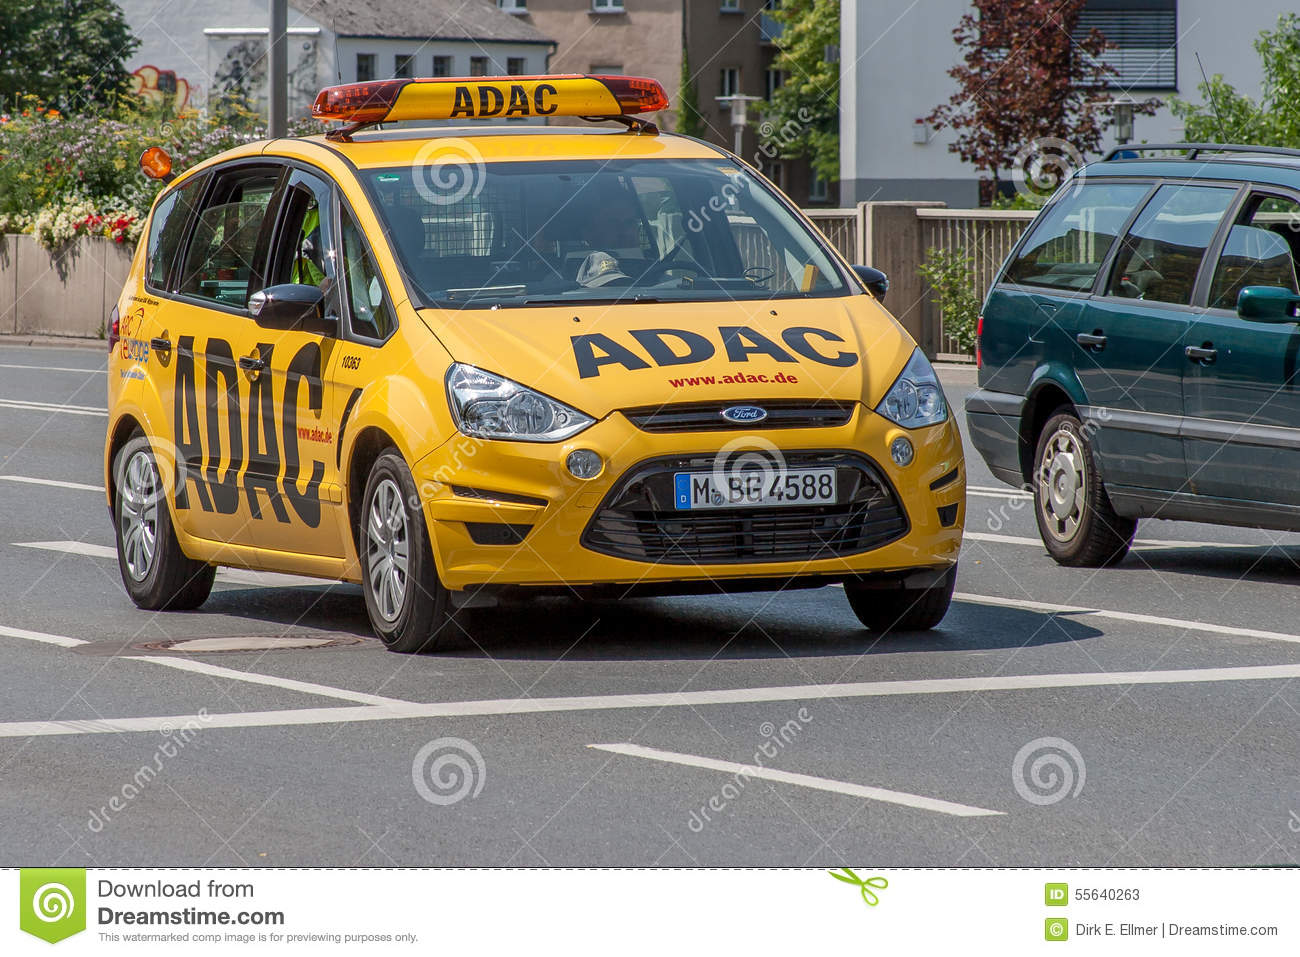 ADAC Service Car The Allgemeiner Deutscher Automobil Club EV Is Germanys And Europes Largest Automobile With More Than 18 Million Members In